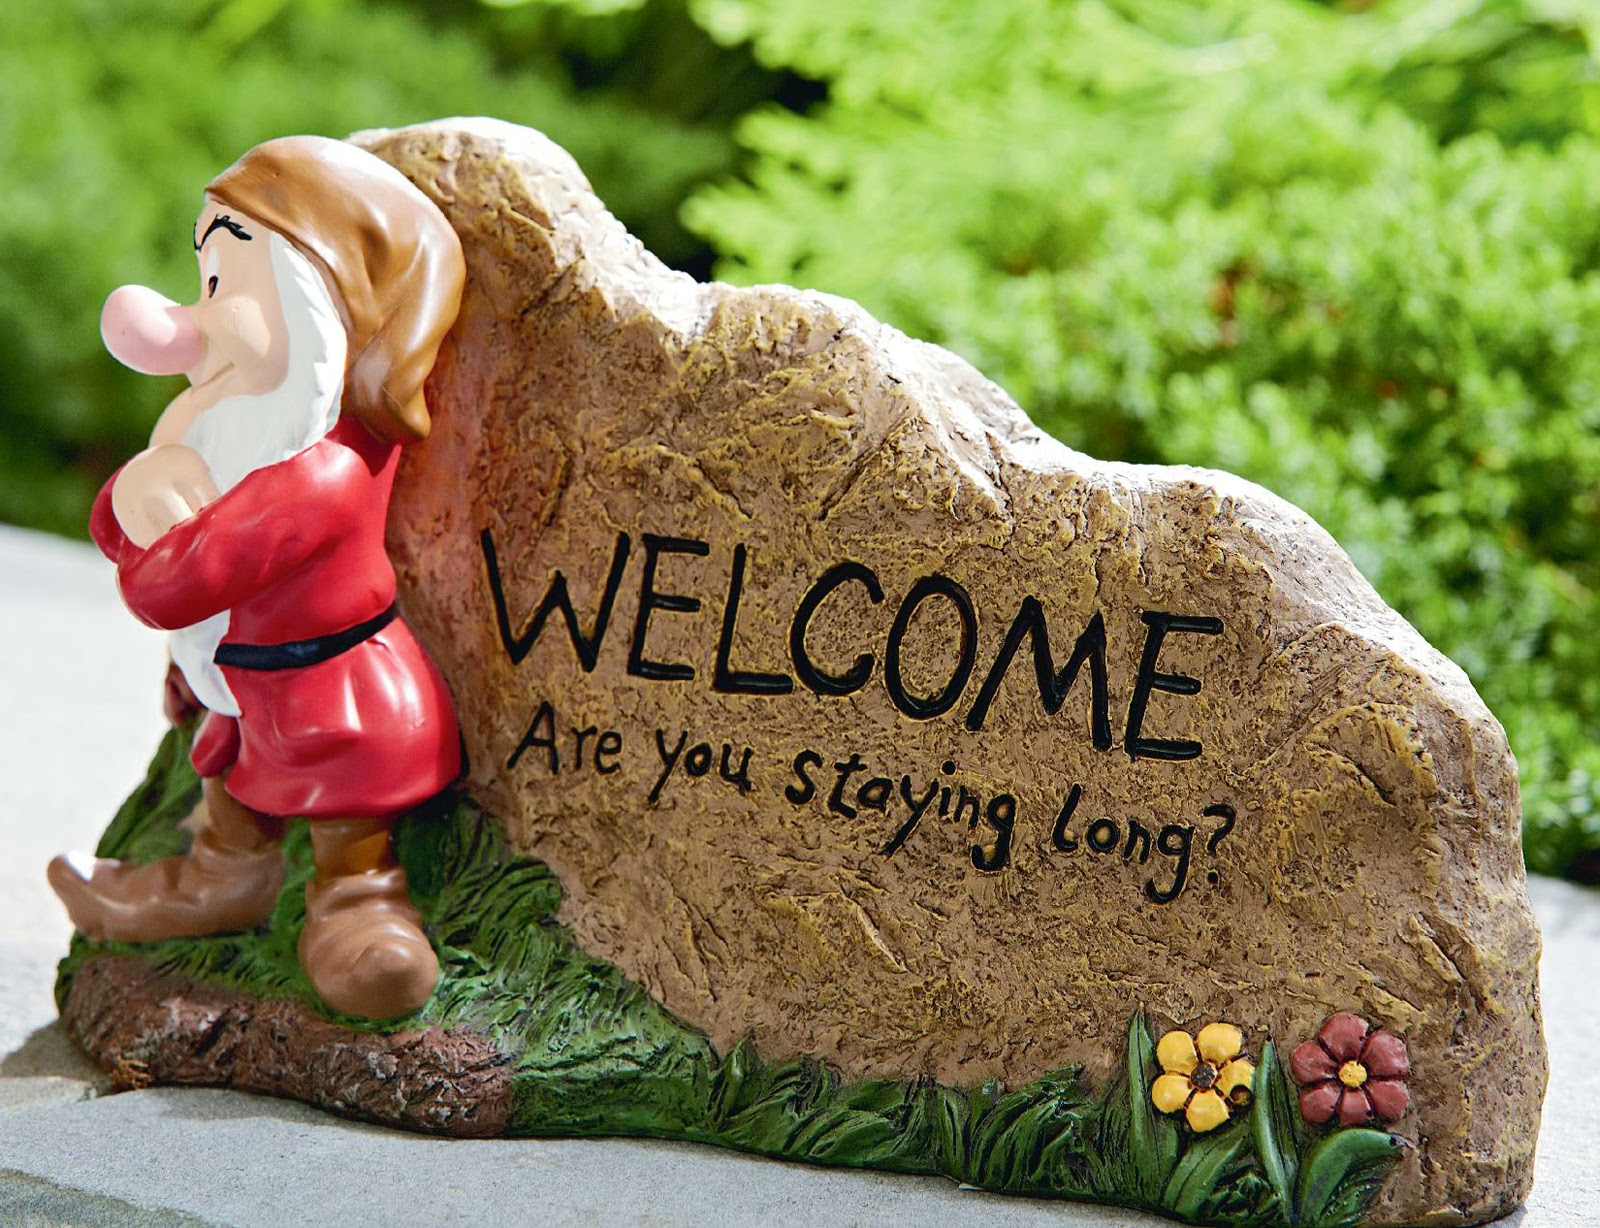 Filmic Light - Snow White Archive: Resin Welcome Rocks & Garden Statue